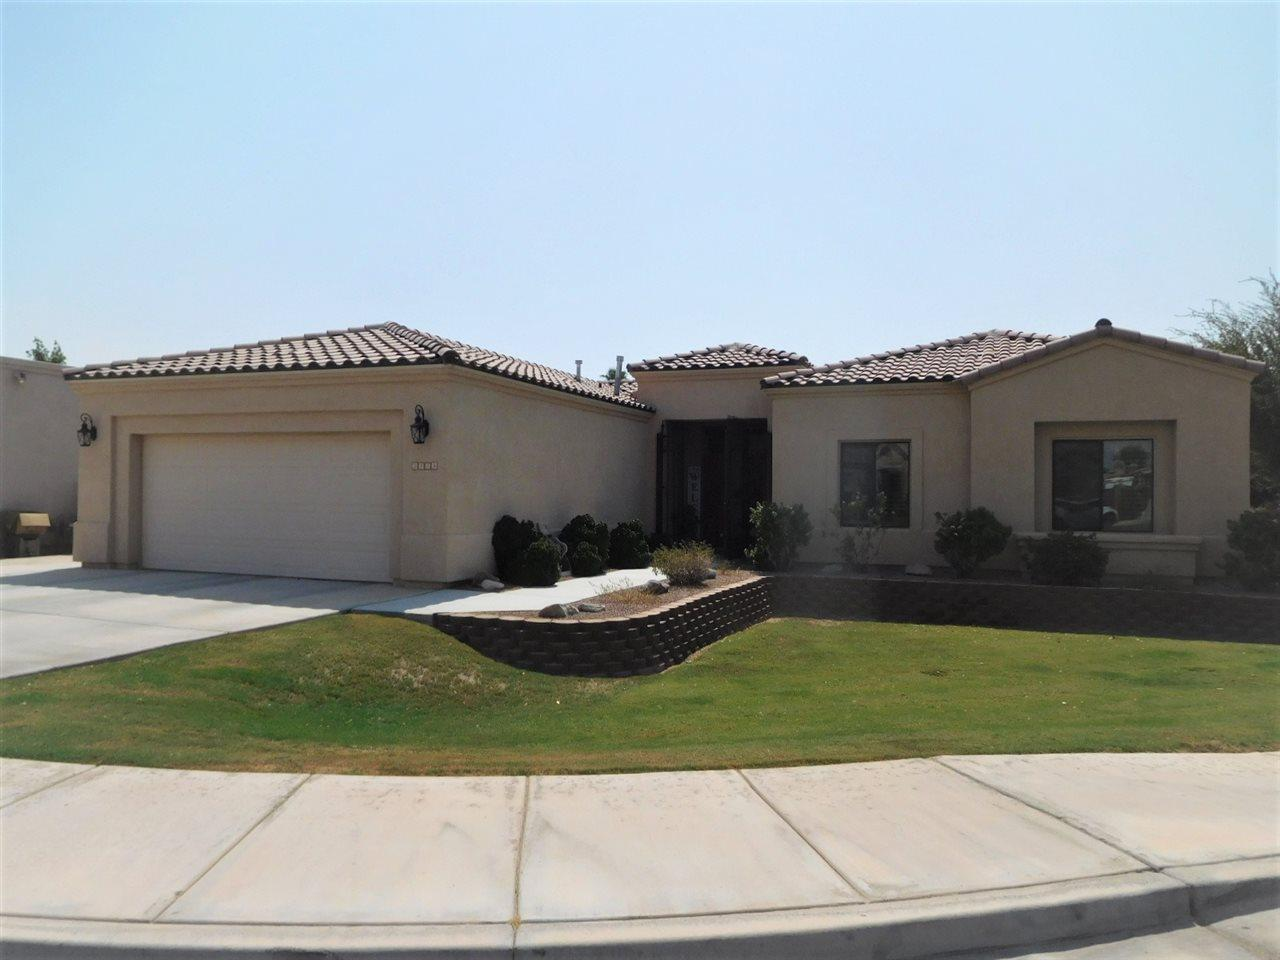 Property Image for 3459 W 17 Pl